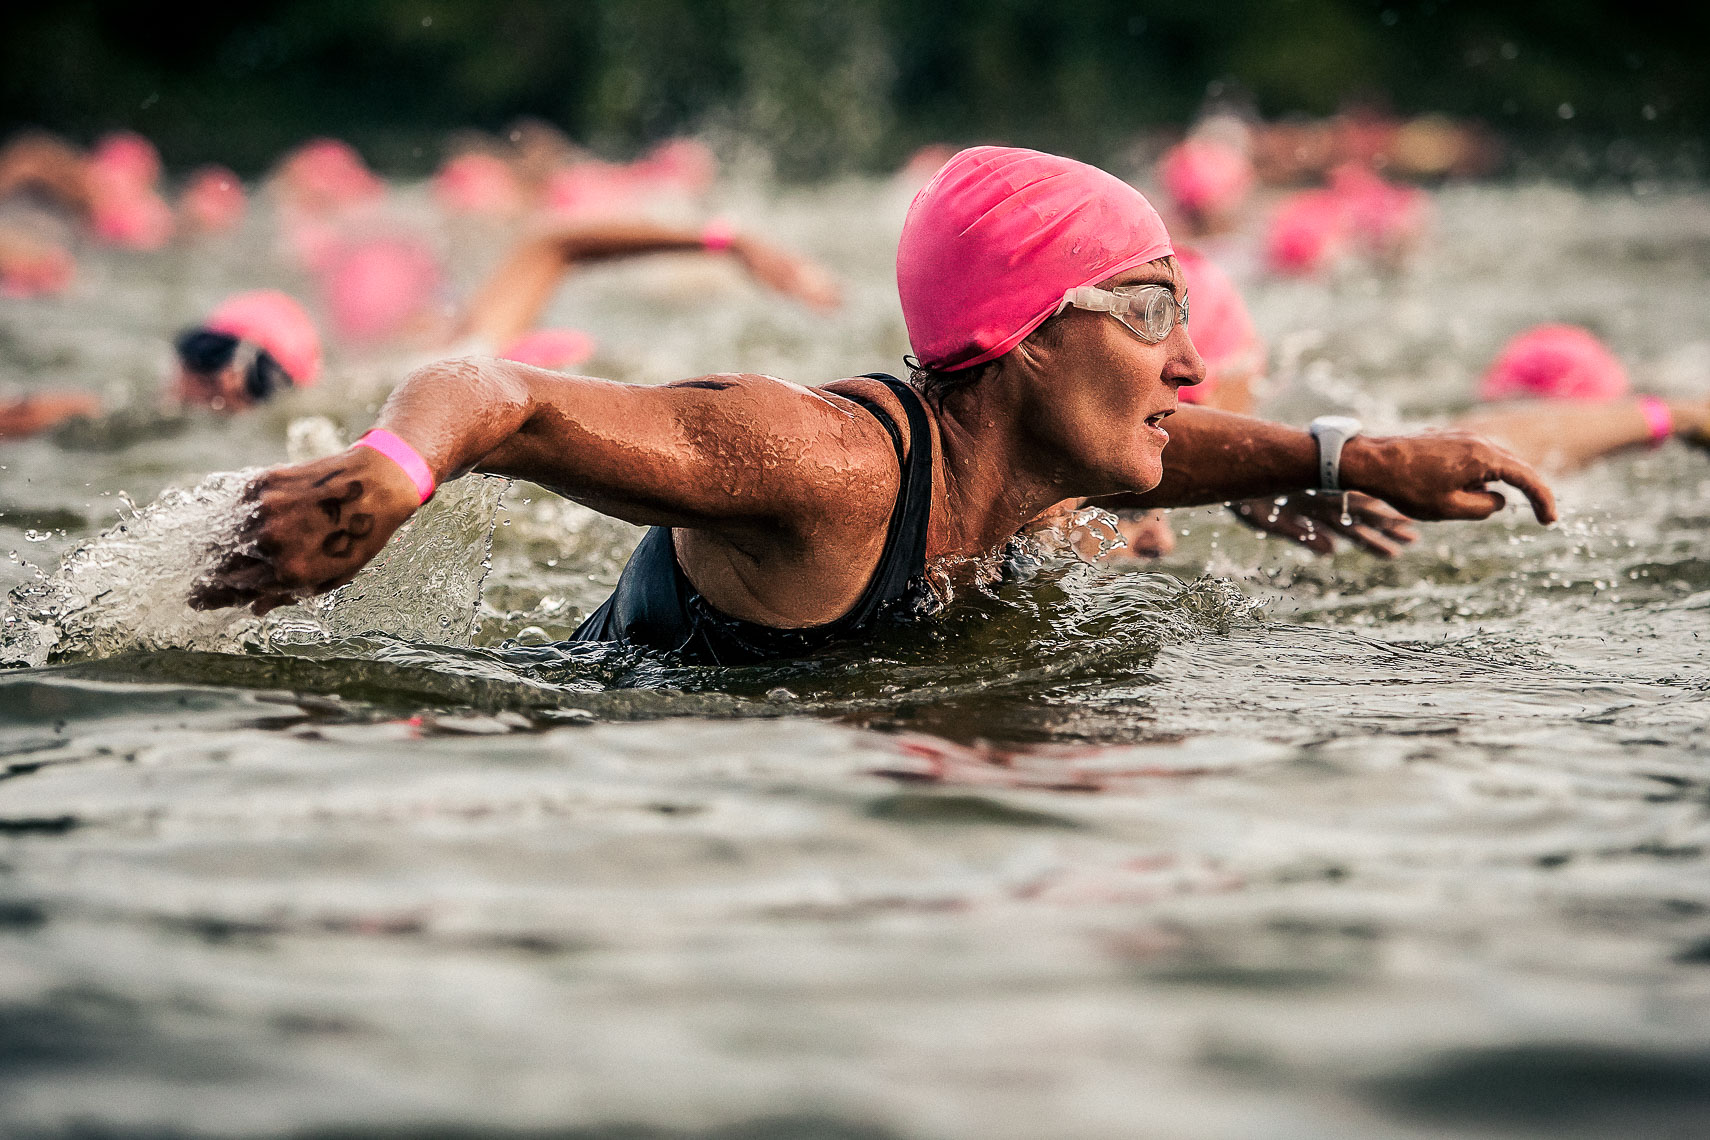 female triathalon swimmer competes in race